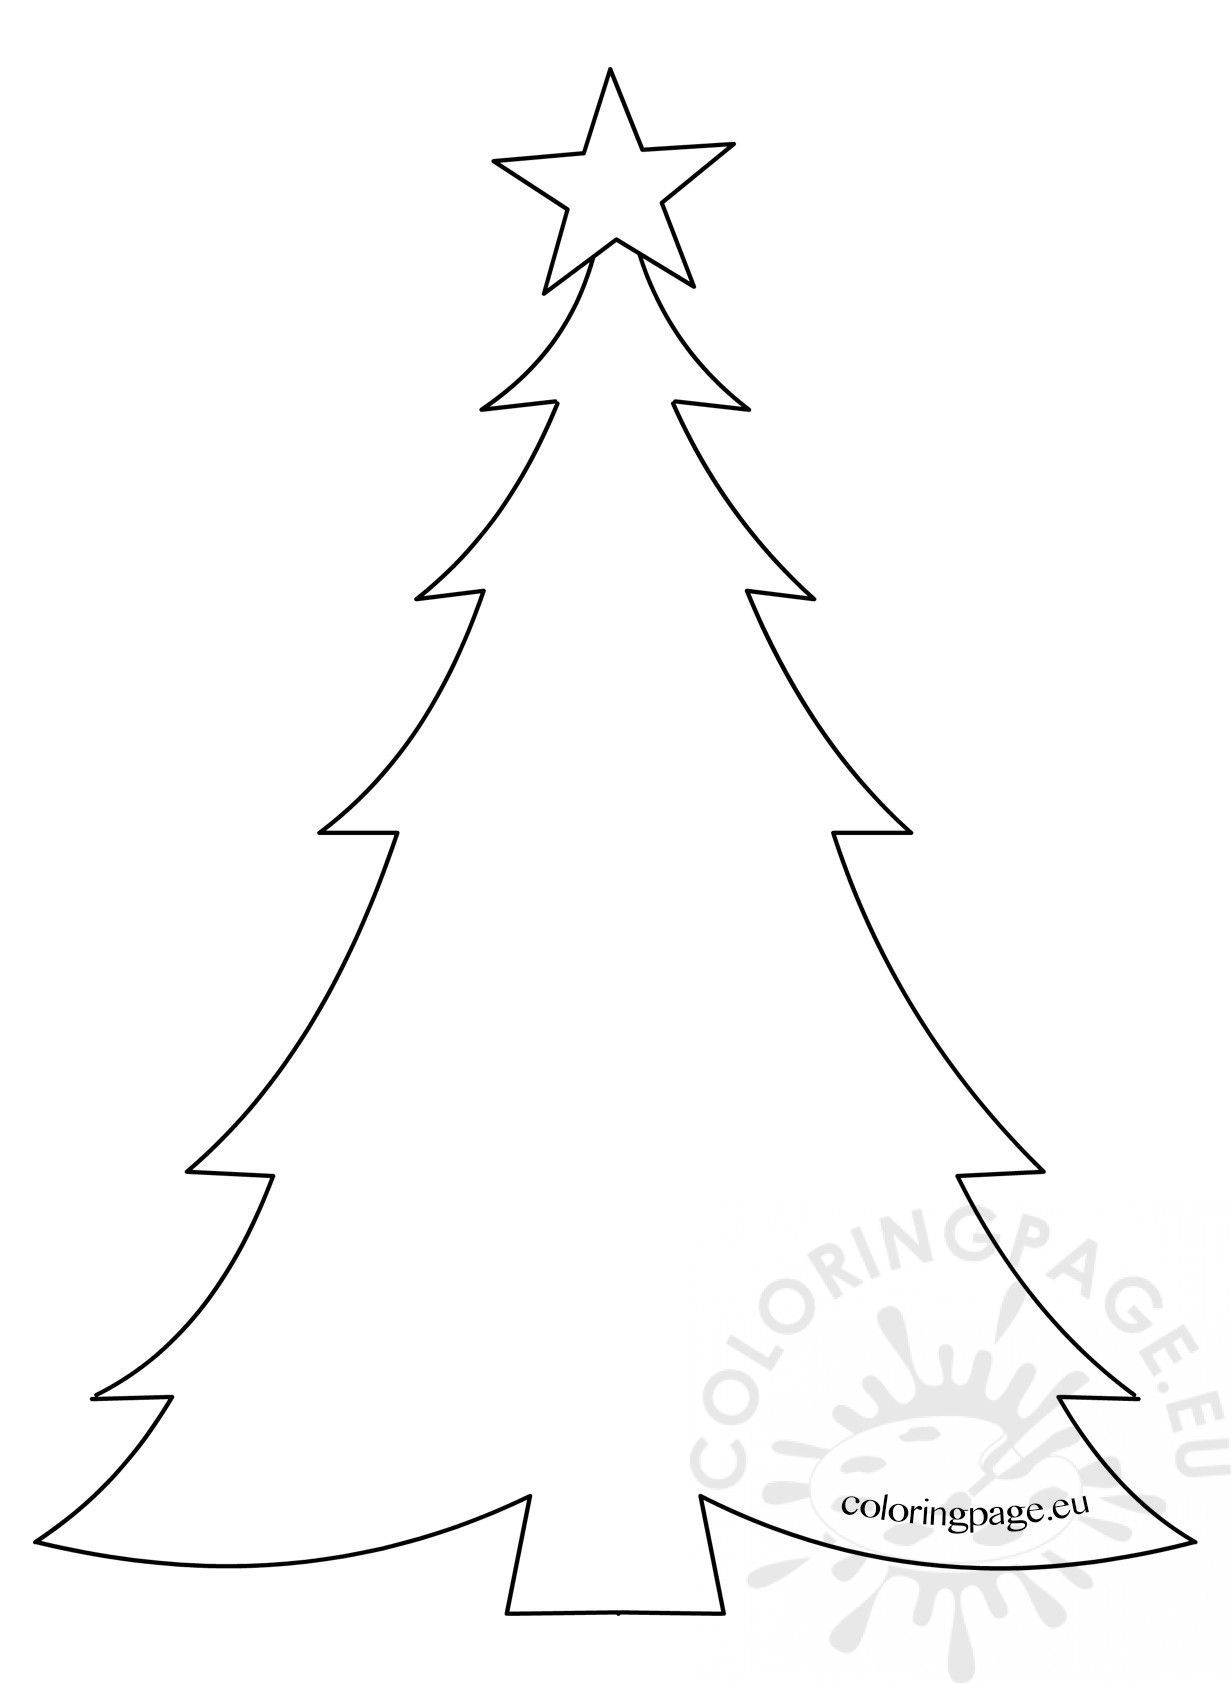 Free Printable Christmas Tree Template Easy Christmas Tree Coloring Page Christmas Tree Coloring Page Christmas Tree Drawing Printable Christmas Coloring Pages